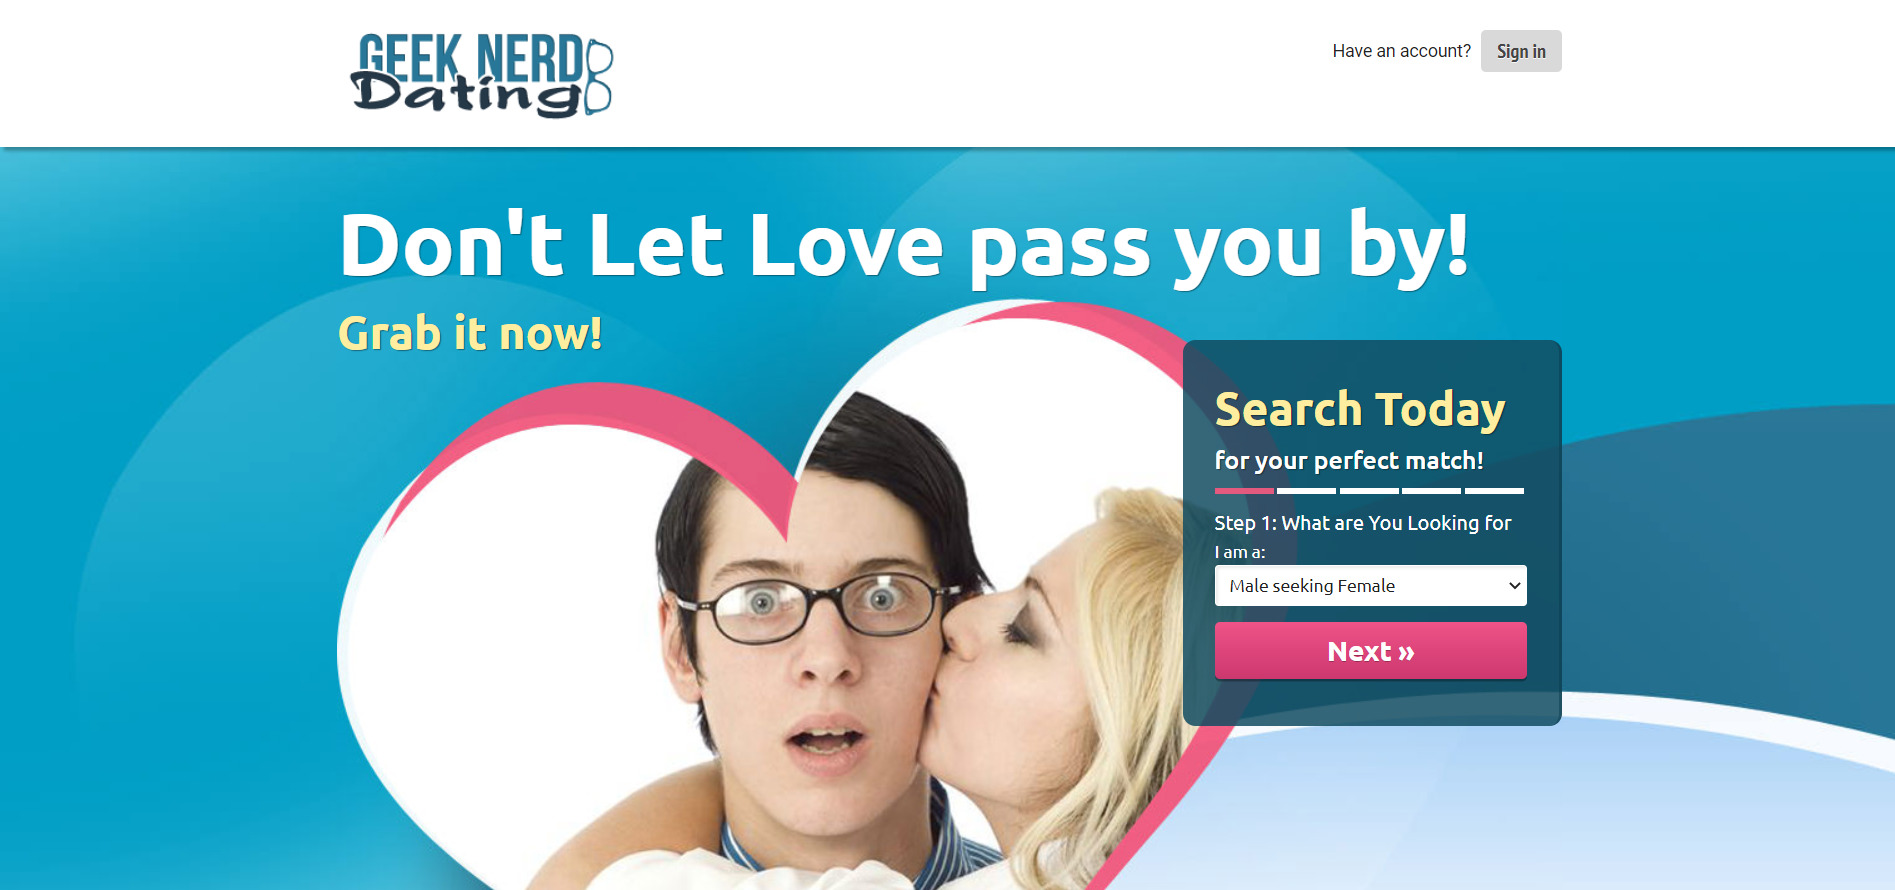 2021 03 07 9 - Top 7 dating apps and websites for geeks and gamers